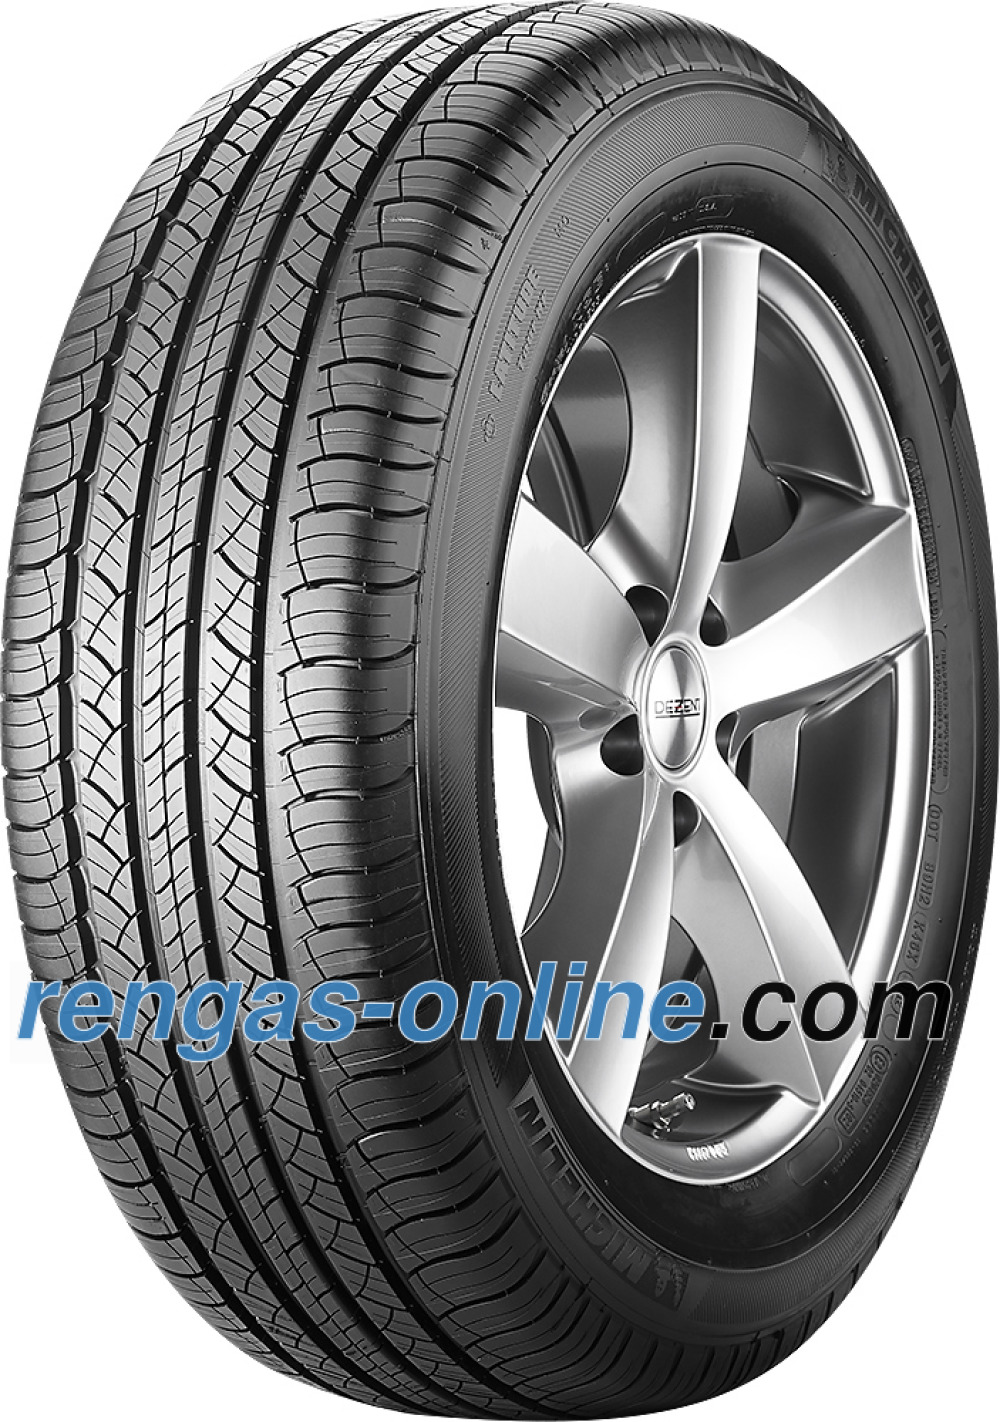 michelin-latitude-tour-hp-23560-r18-103h-grnx-ao